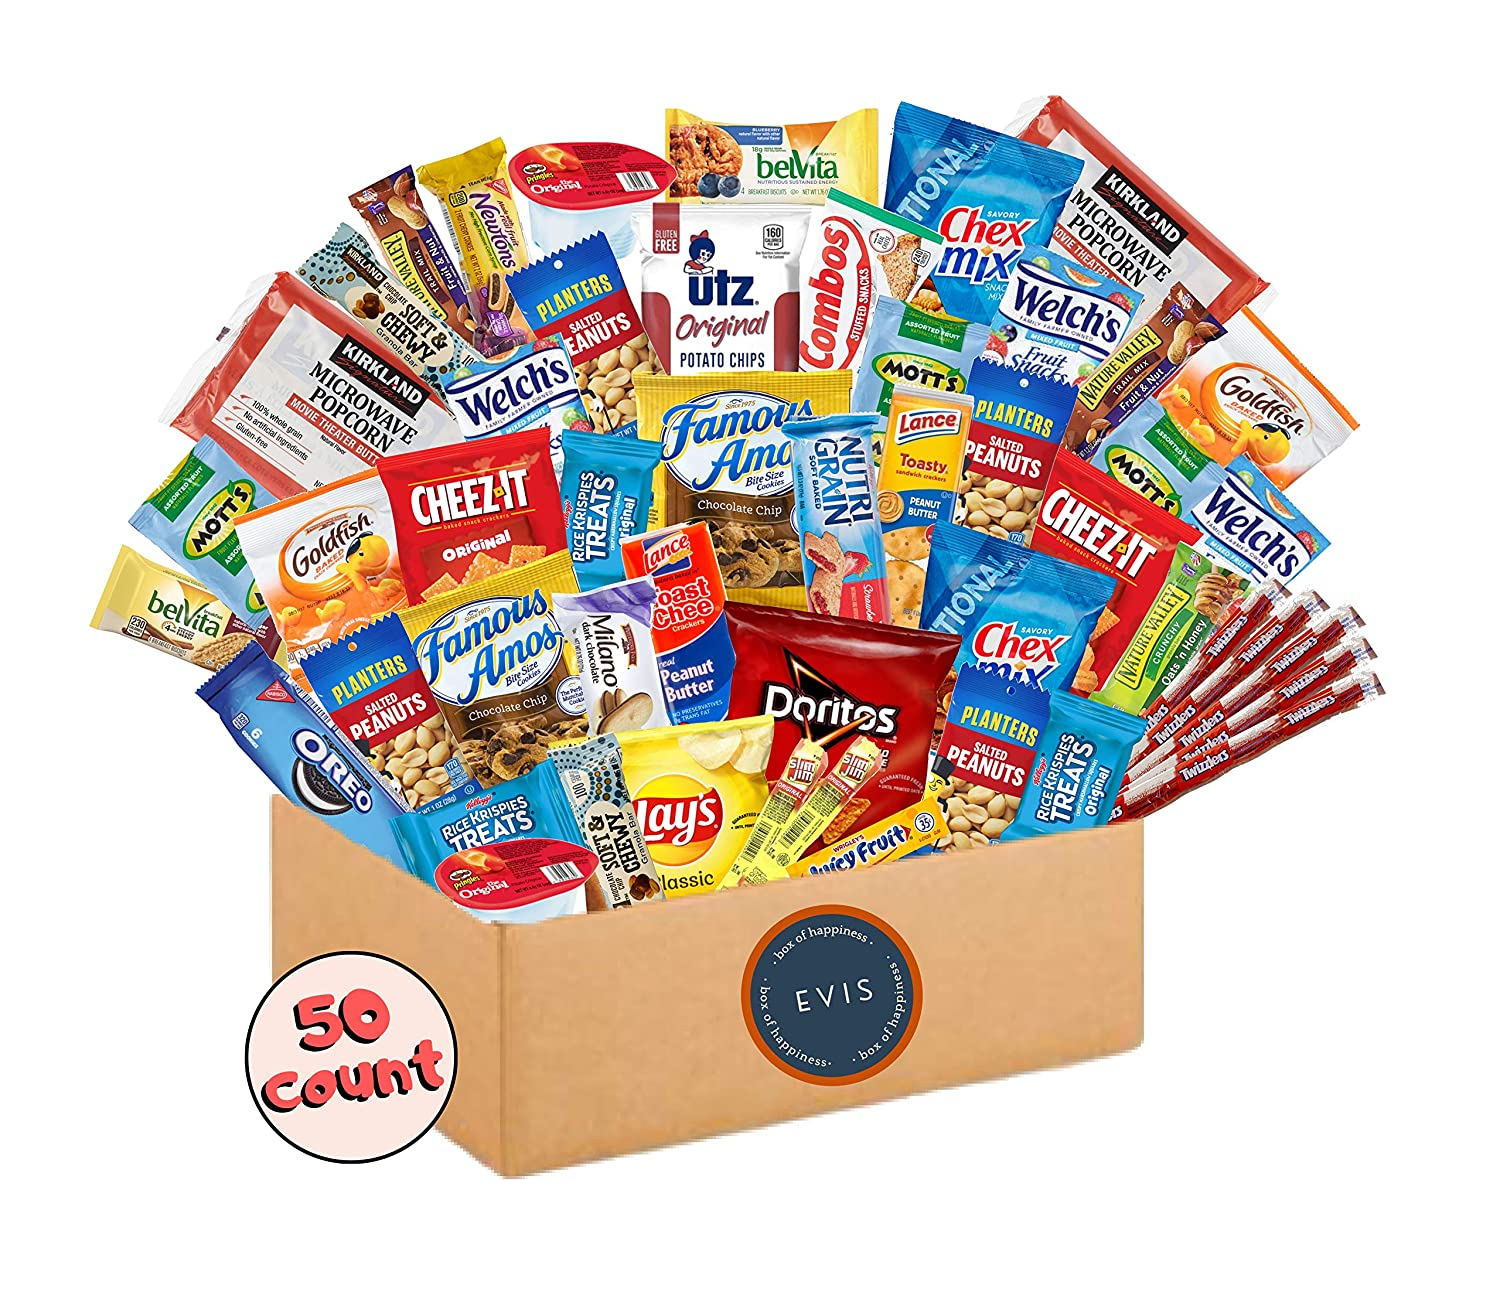 EVIS Variety Snack Pack (50 Count) Easter Candy Gift Basket, Ultimate Care Package for College Students, Birthday Party Gift for Men, Women, Kids, Natural Bars, Nuts, Cookies, Chips, Fruit Snacks